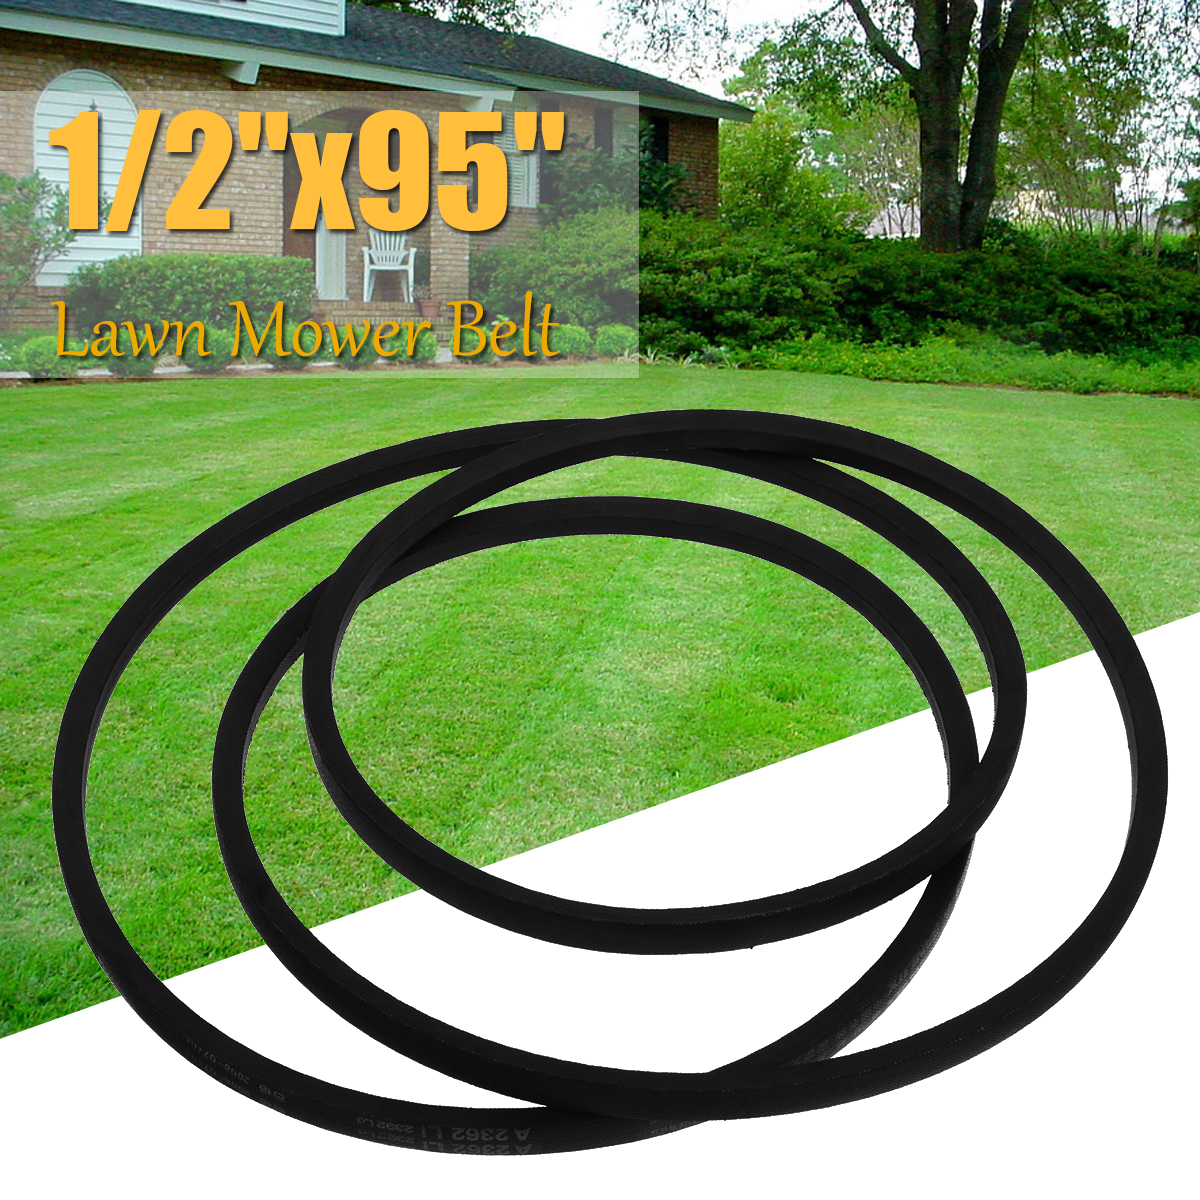 1pcs 13mm 1/2 x 95 A93V Industry Lawn Mower Belt Black Rubber Tapes for Yard Machine Lawn Mower K Type Vee V Type Belt